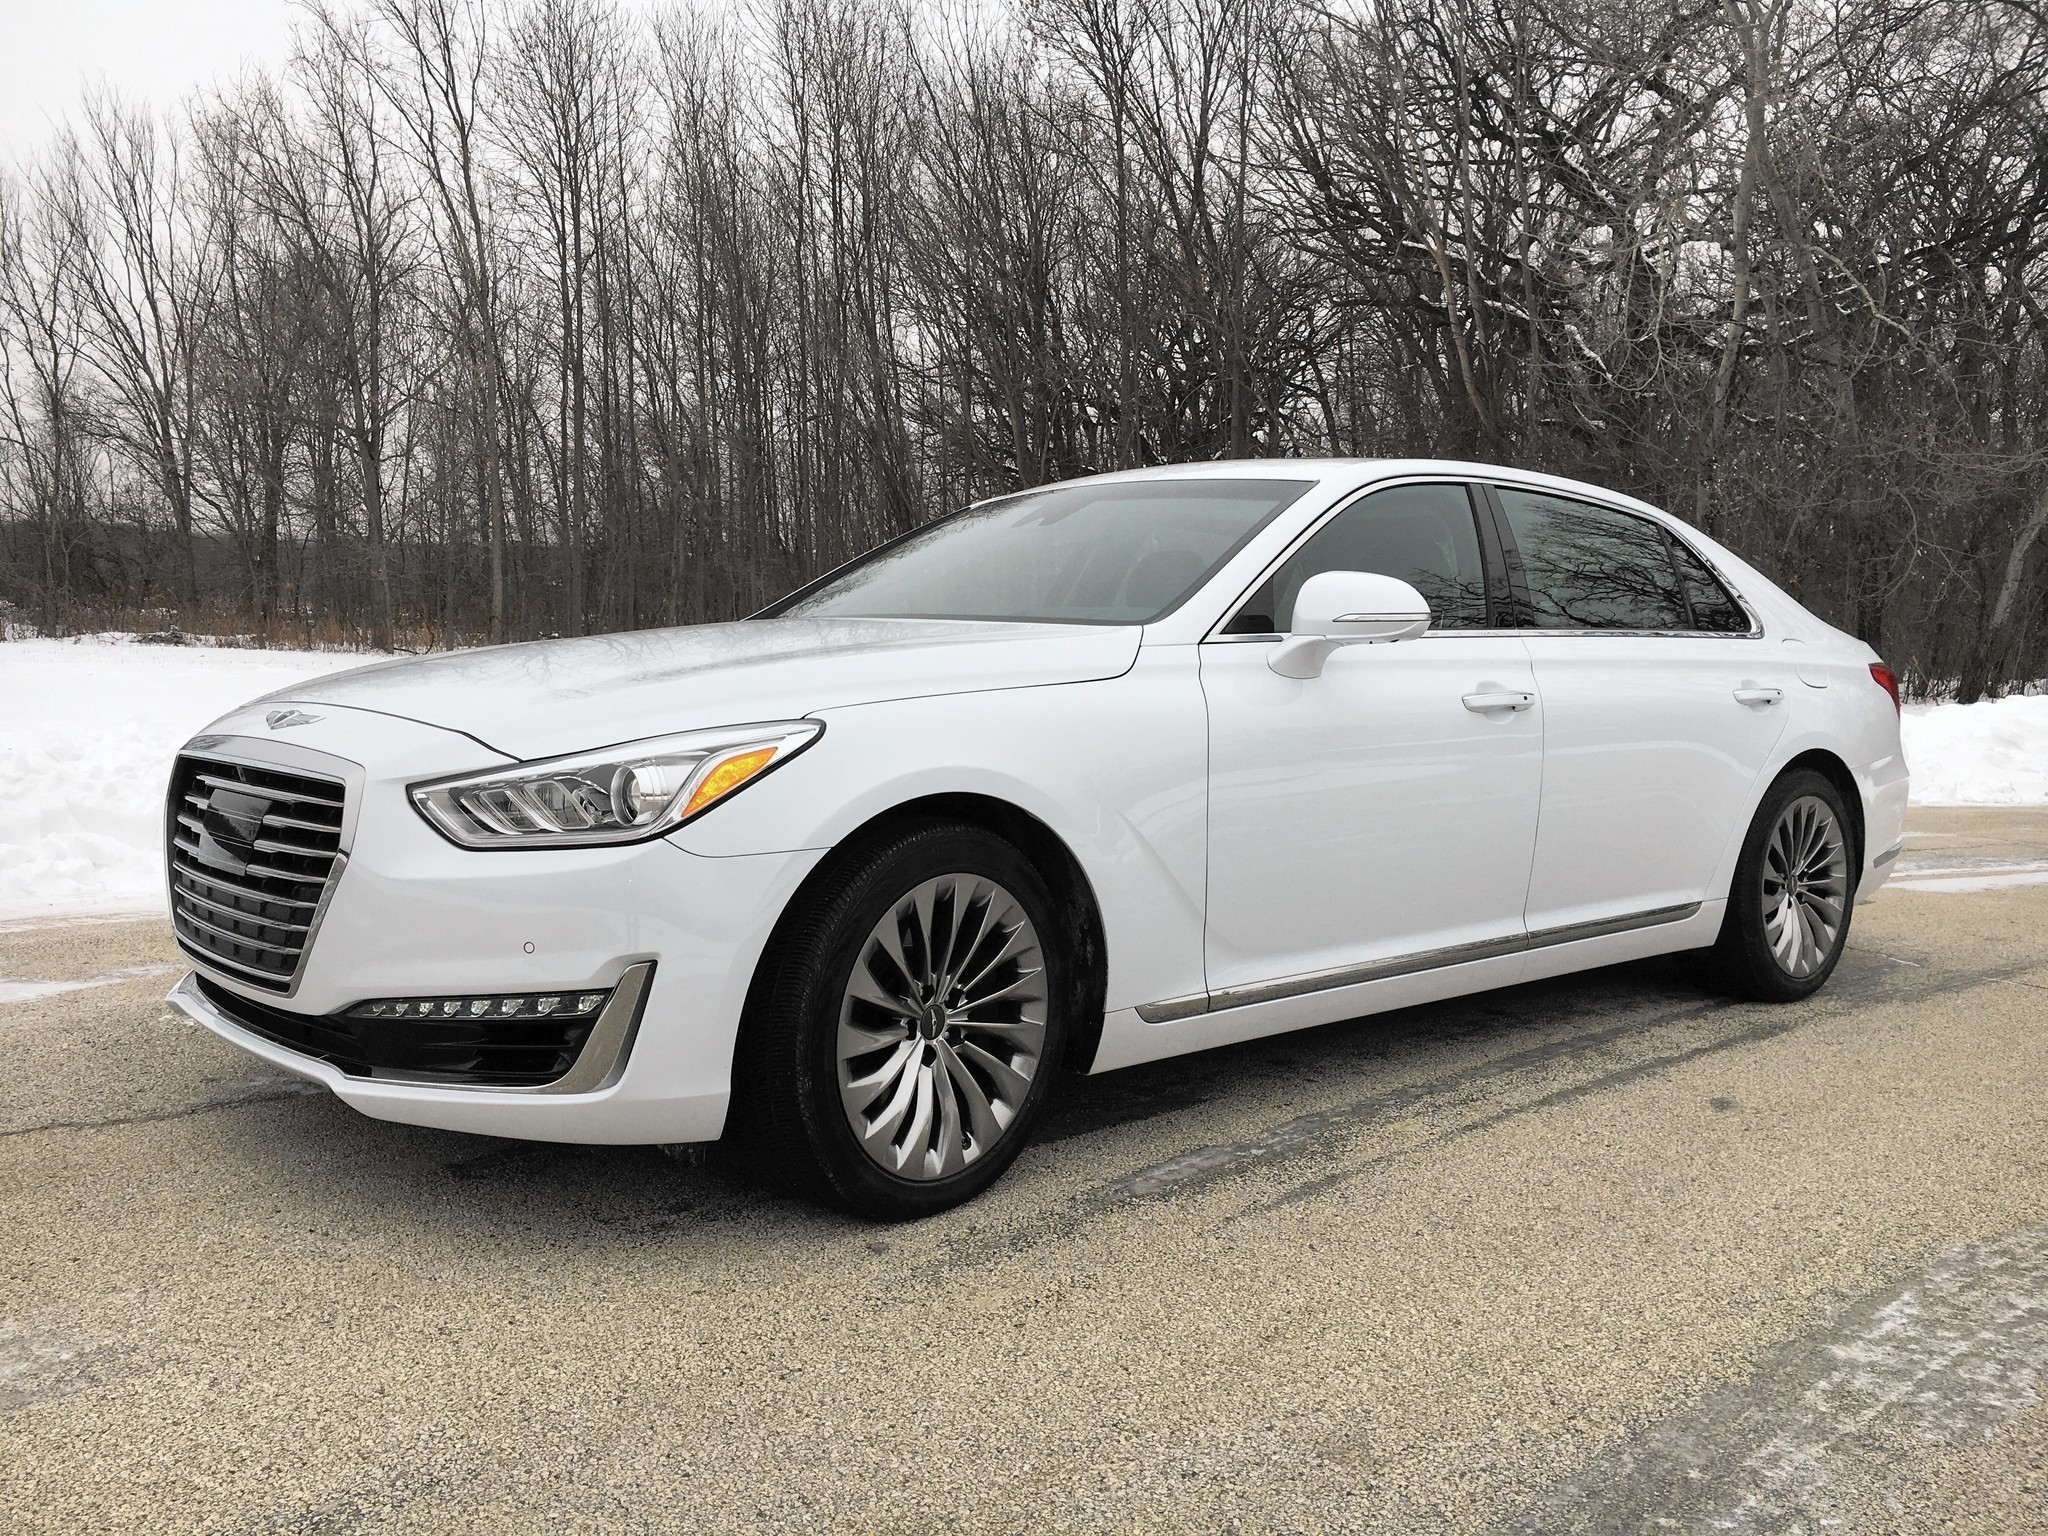 2017 Genesis G90 Flagship Sedan Carves Out A Spot For Modest Luxury Chicago Tribune